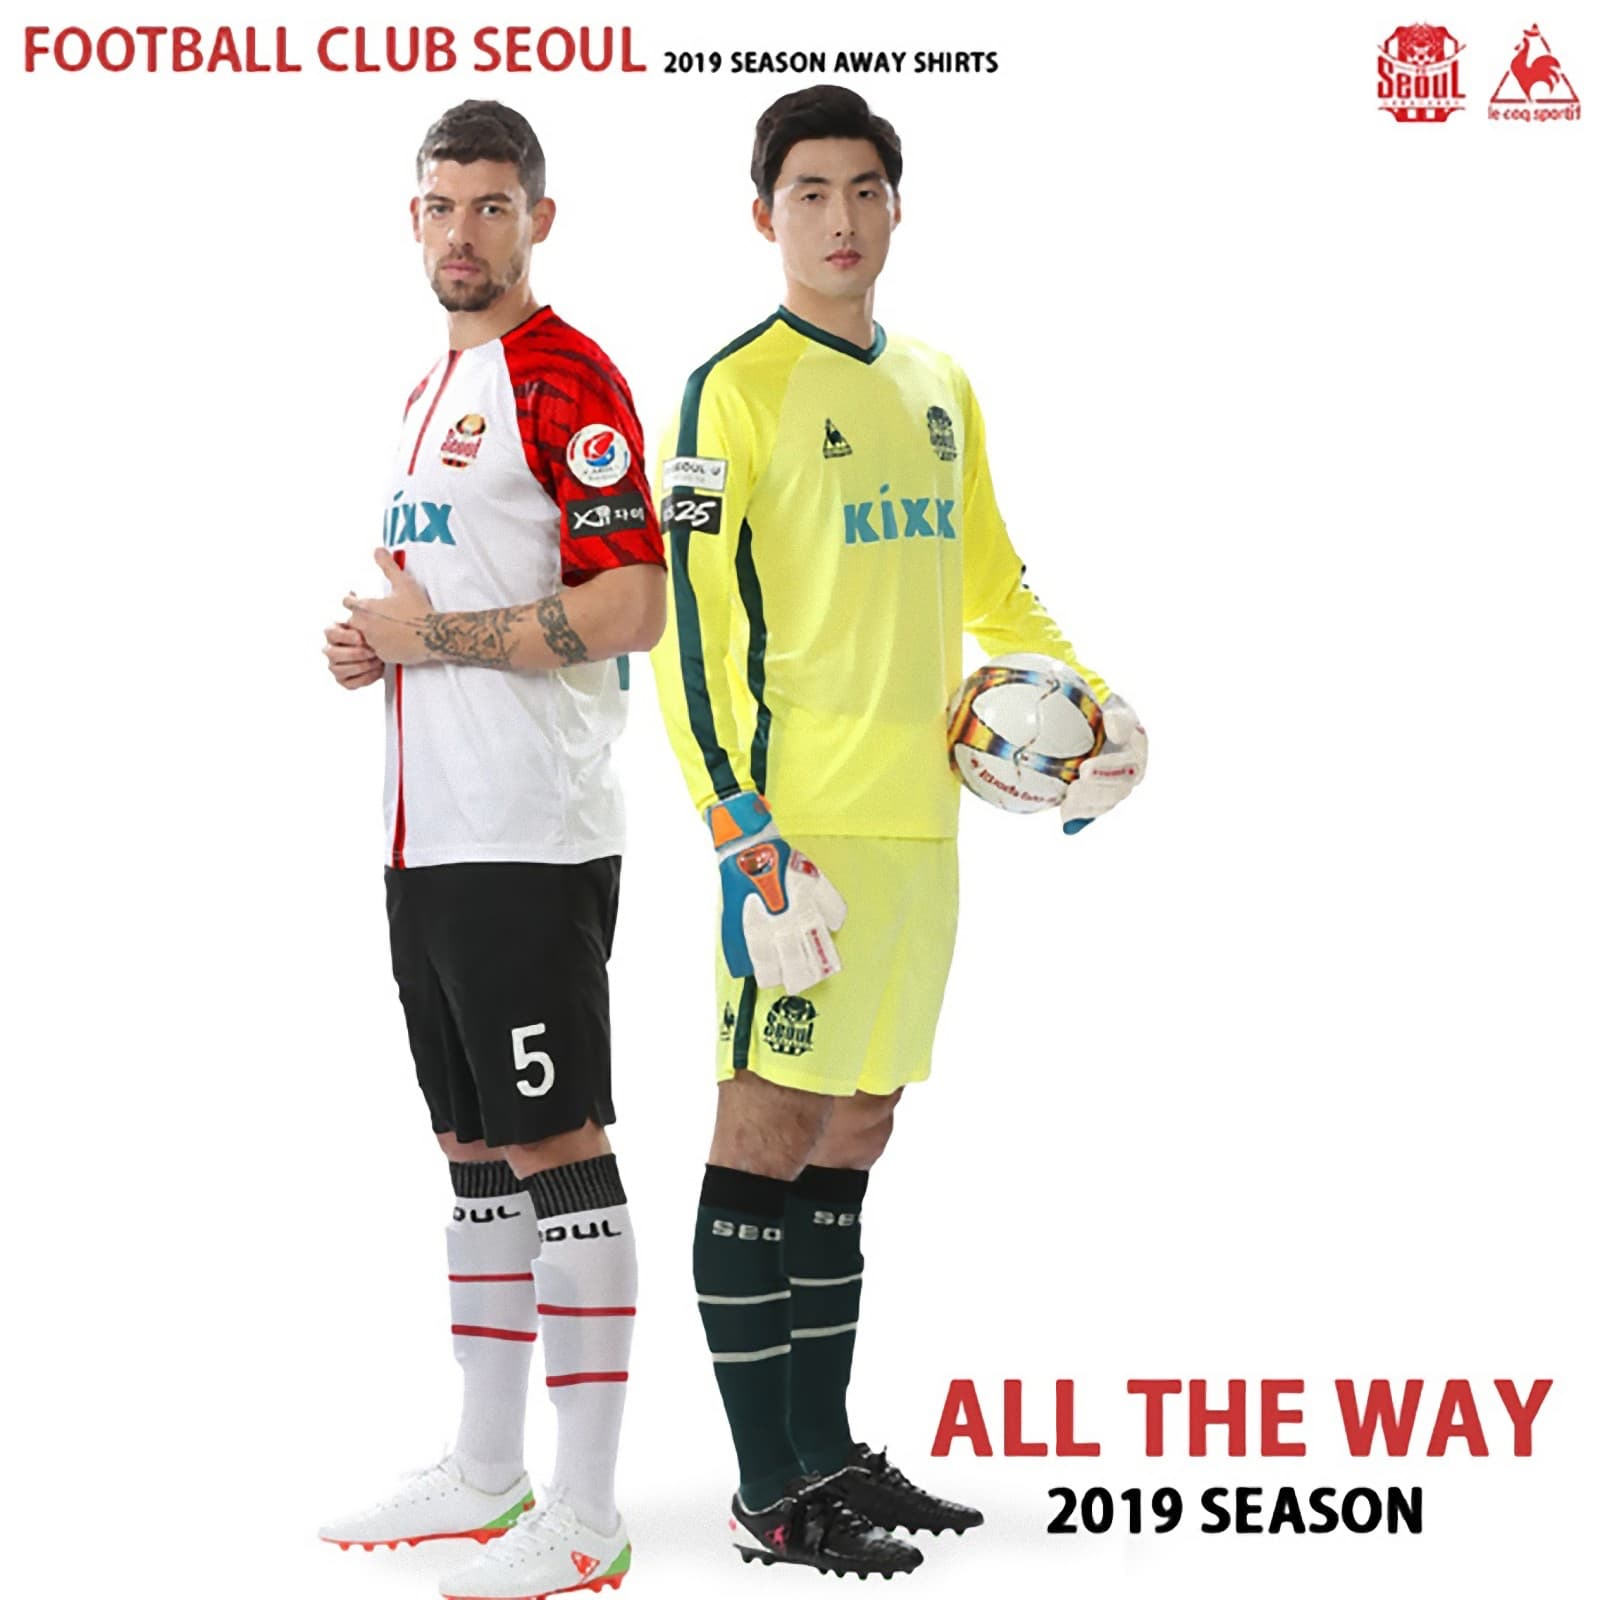 bfb7d2144a8 South Korean club FC Seoul 2019 today officially revealed their new 2019  away kit, made by Le Coq Sportif.